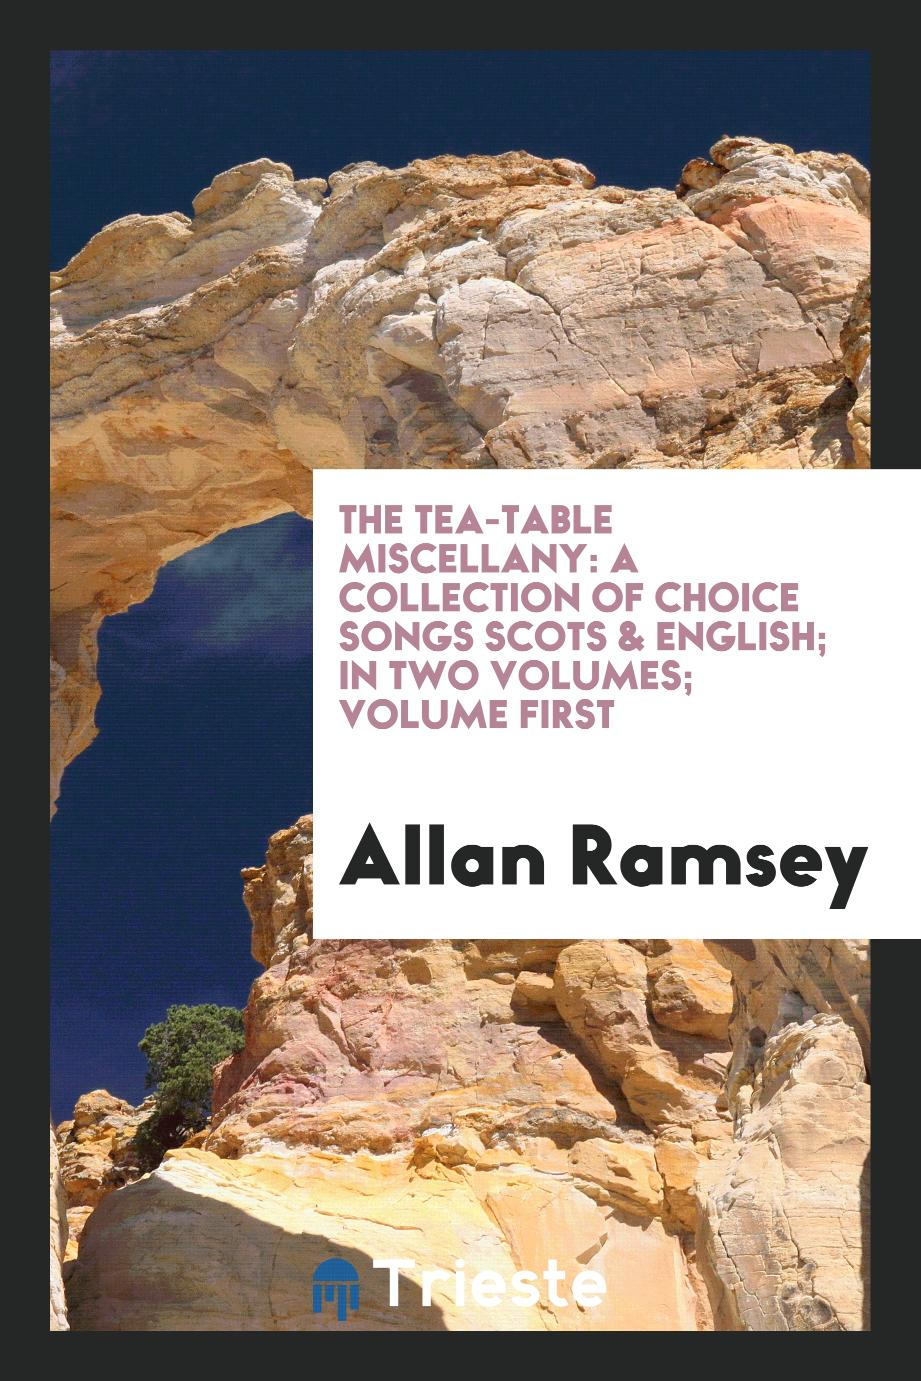 The tea-table miscellany: a collection of choice songs Scots & English; In two Volumes; Volume First